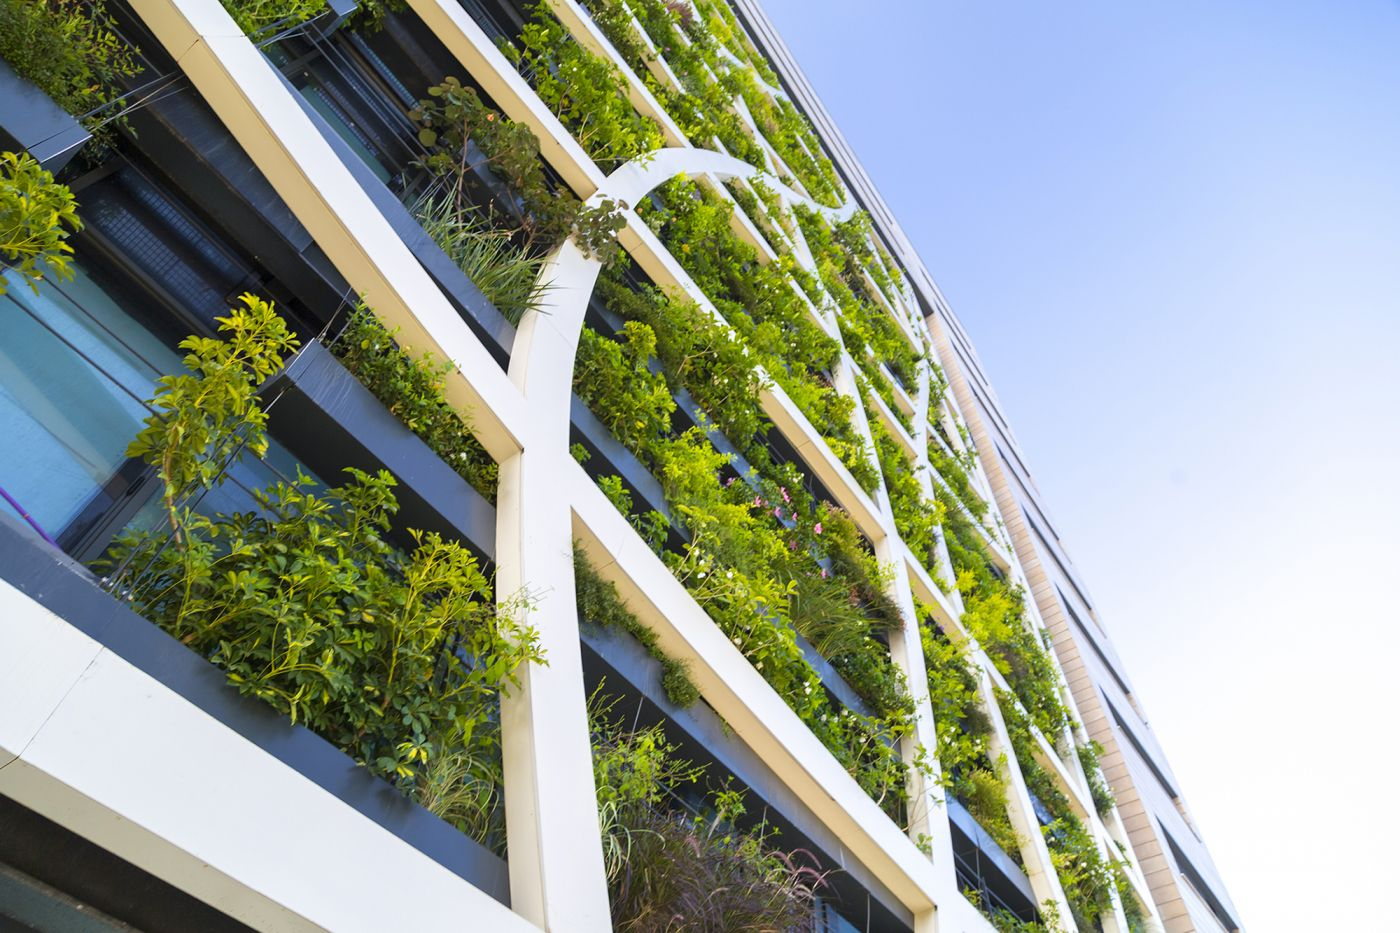 Sustainable hotel building with green leaf facade